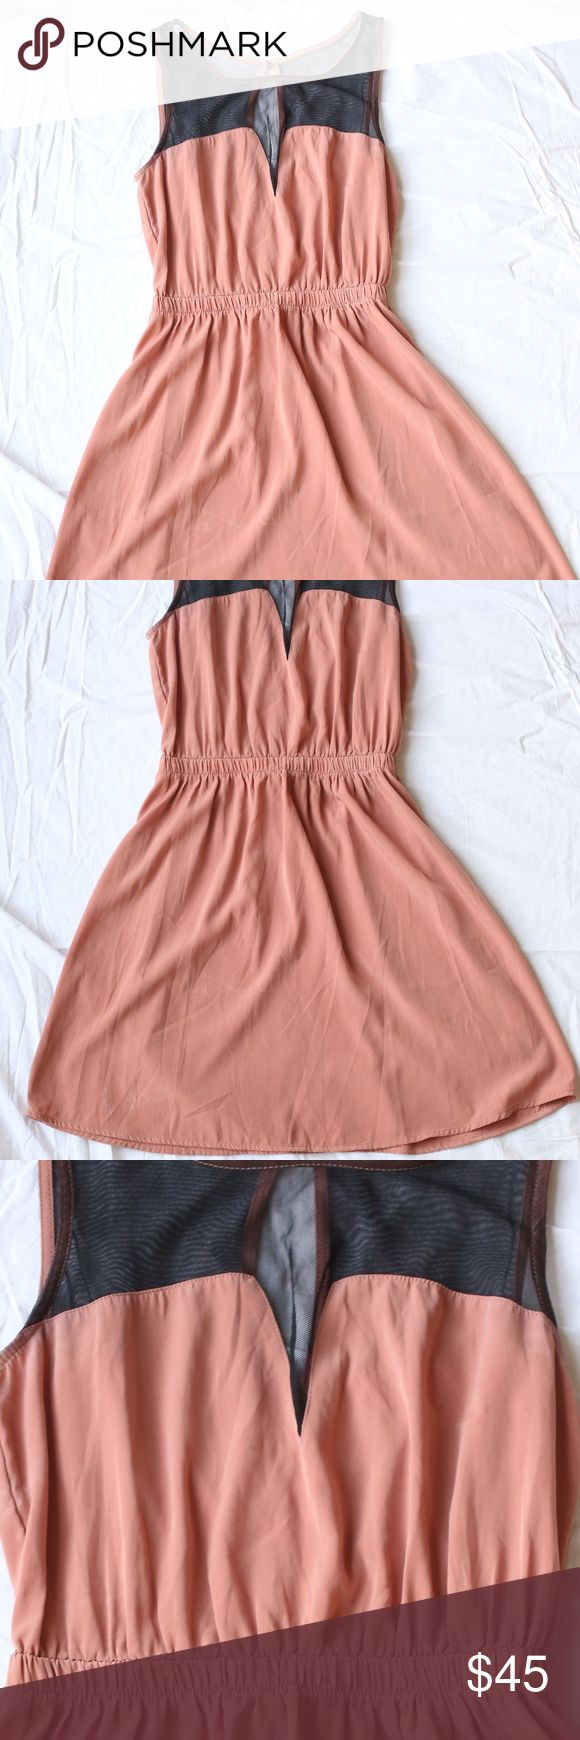 Lush Orange/Salmon Dress As good as new! Lush Dresses